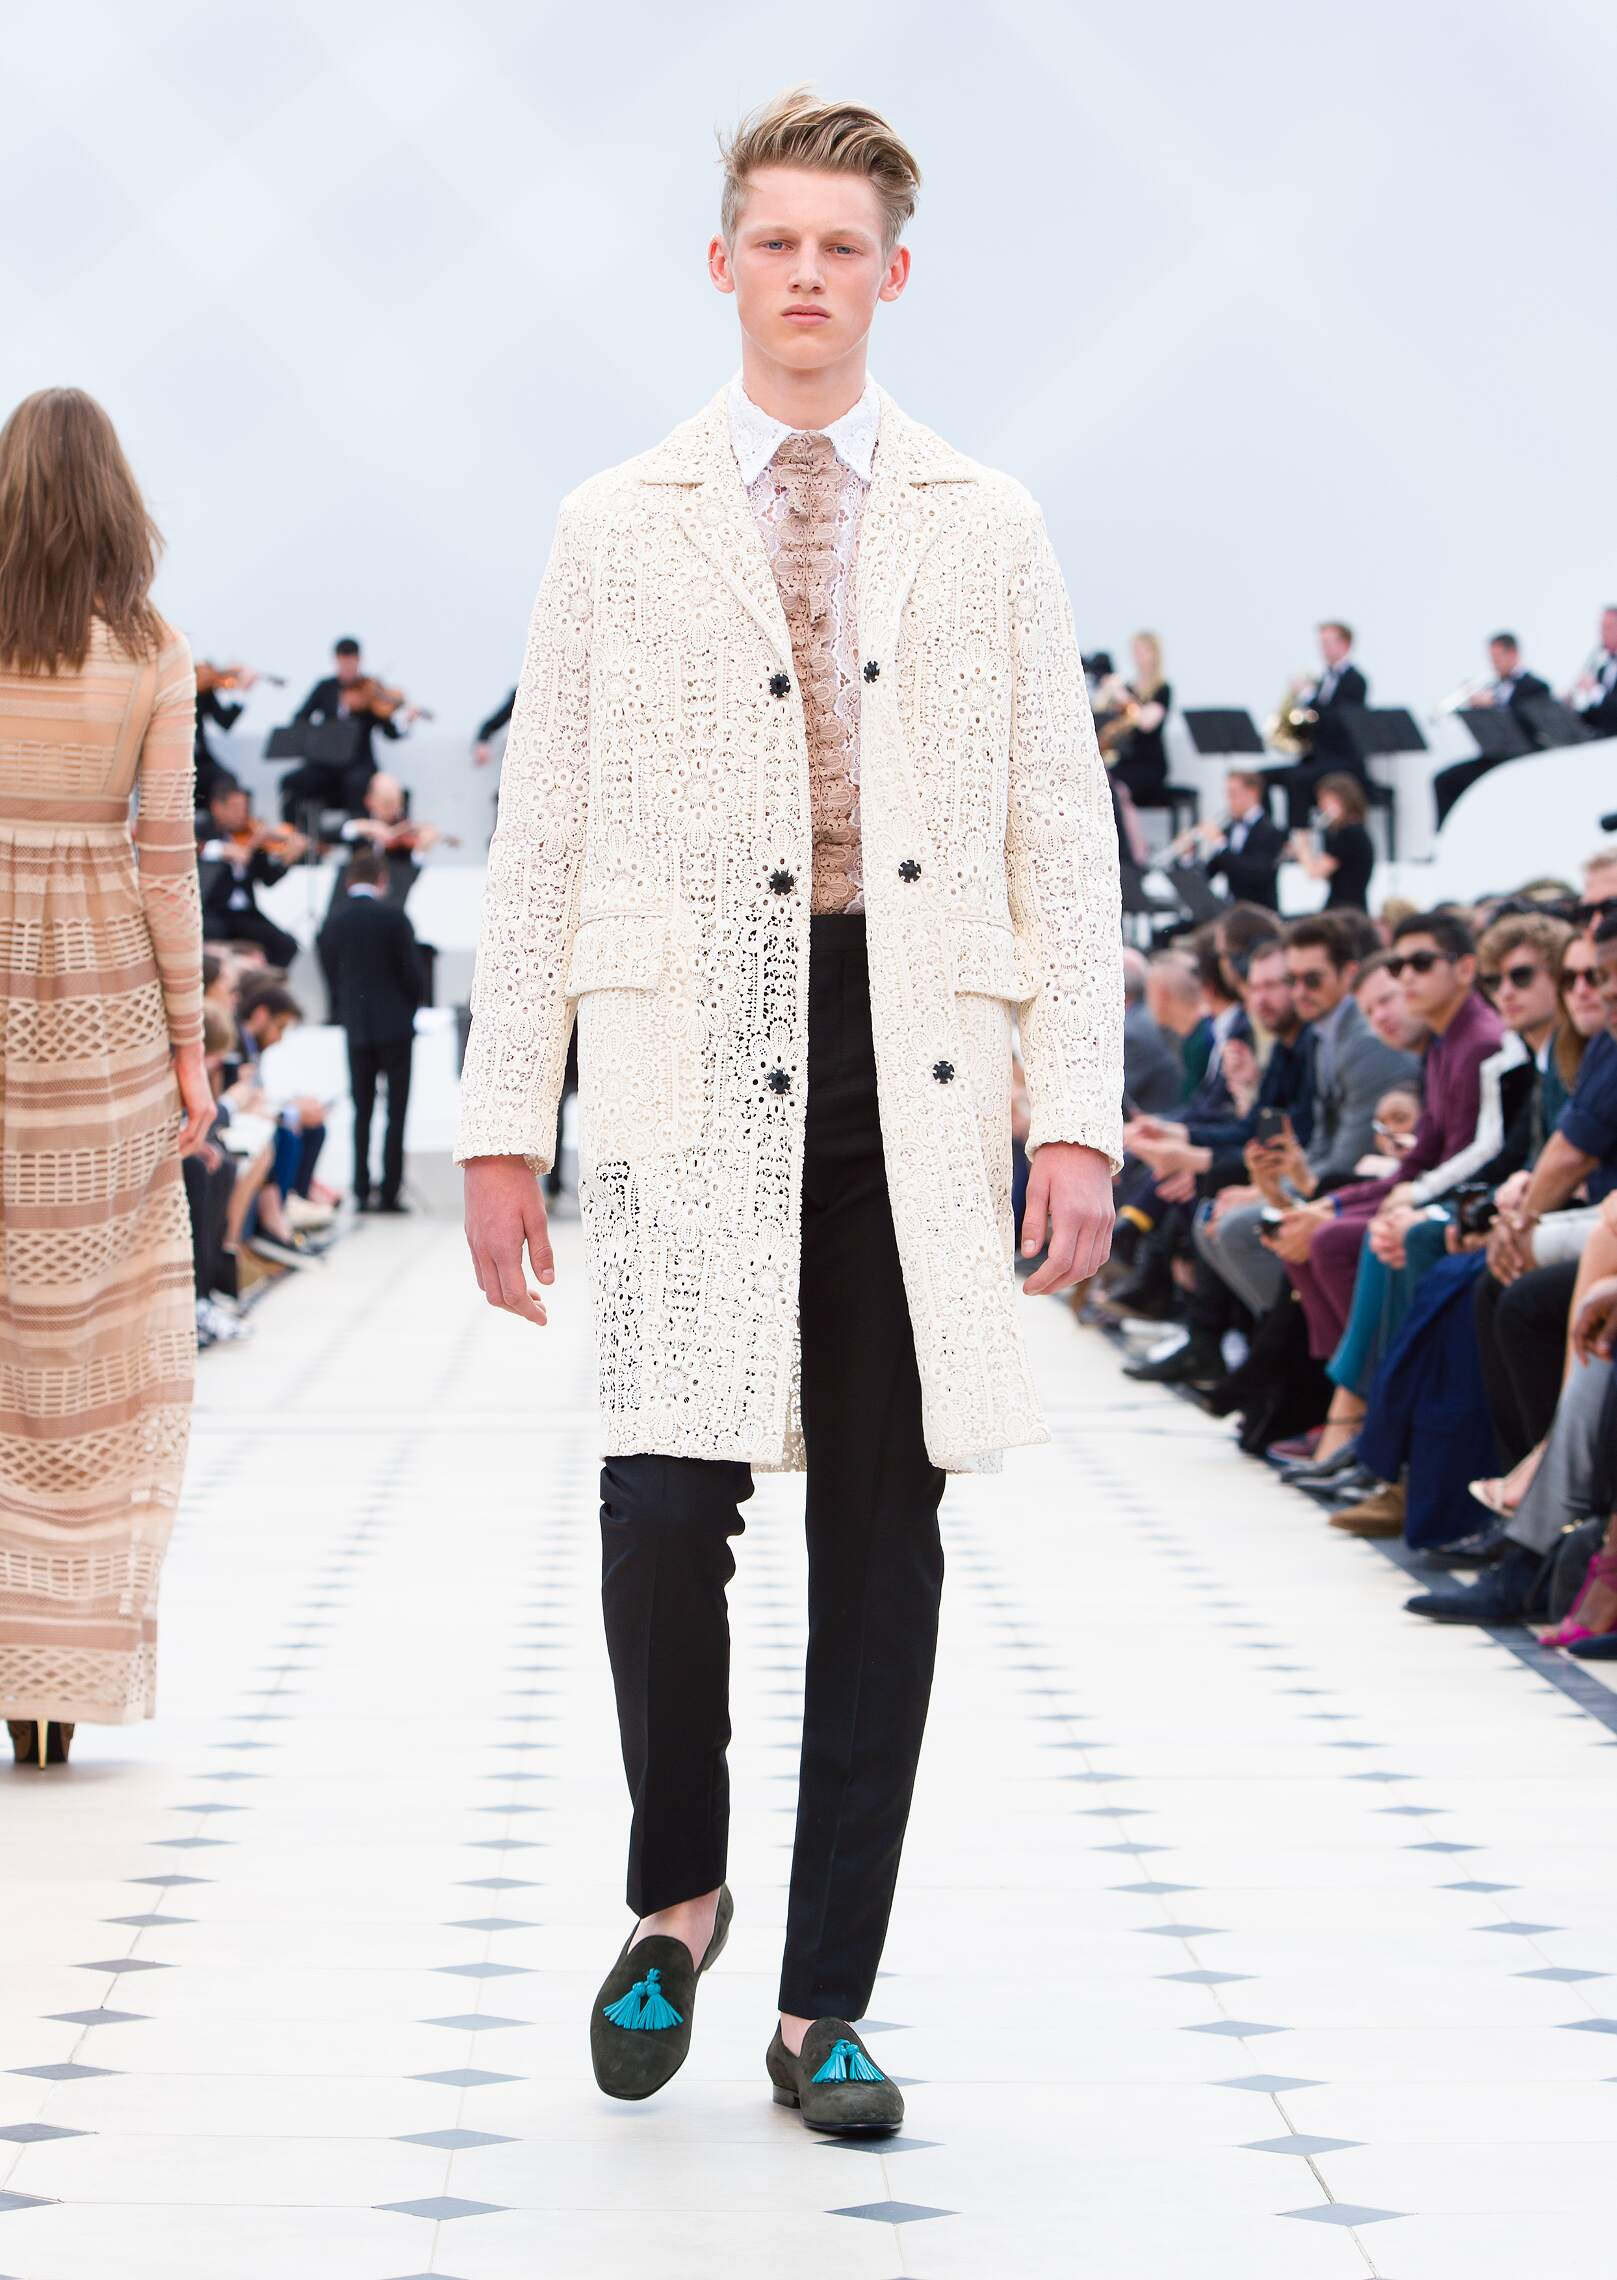 Discover Your Model With These Fashion Suggestions 2016-Spring-Men-Fashion-Show-Burberry-Prorsum-Collection